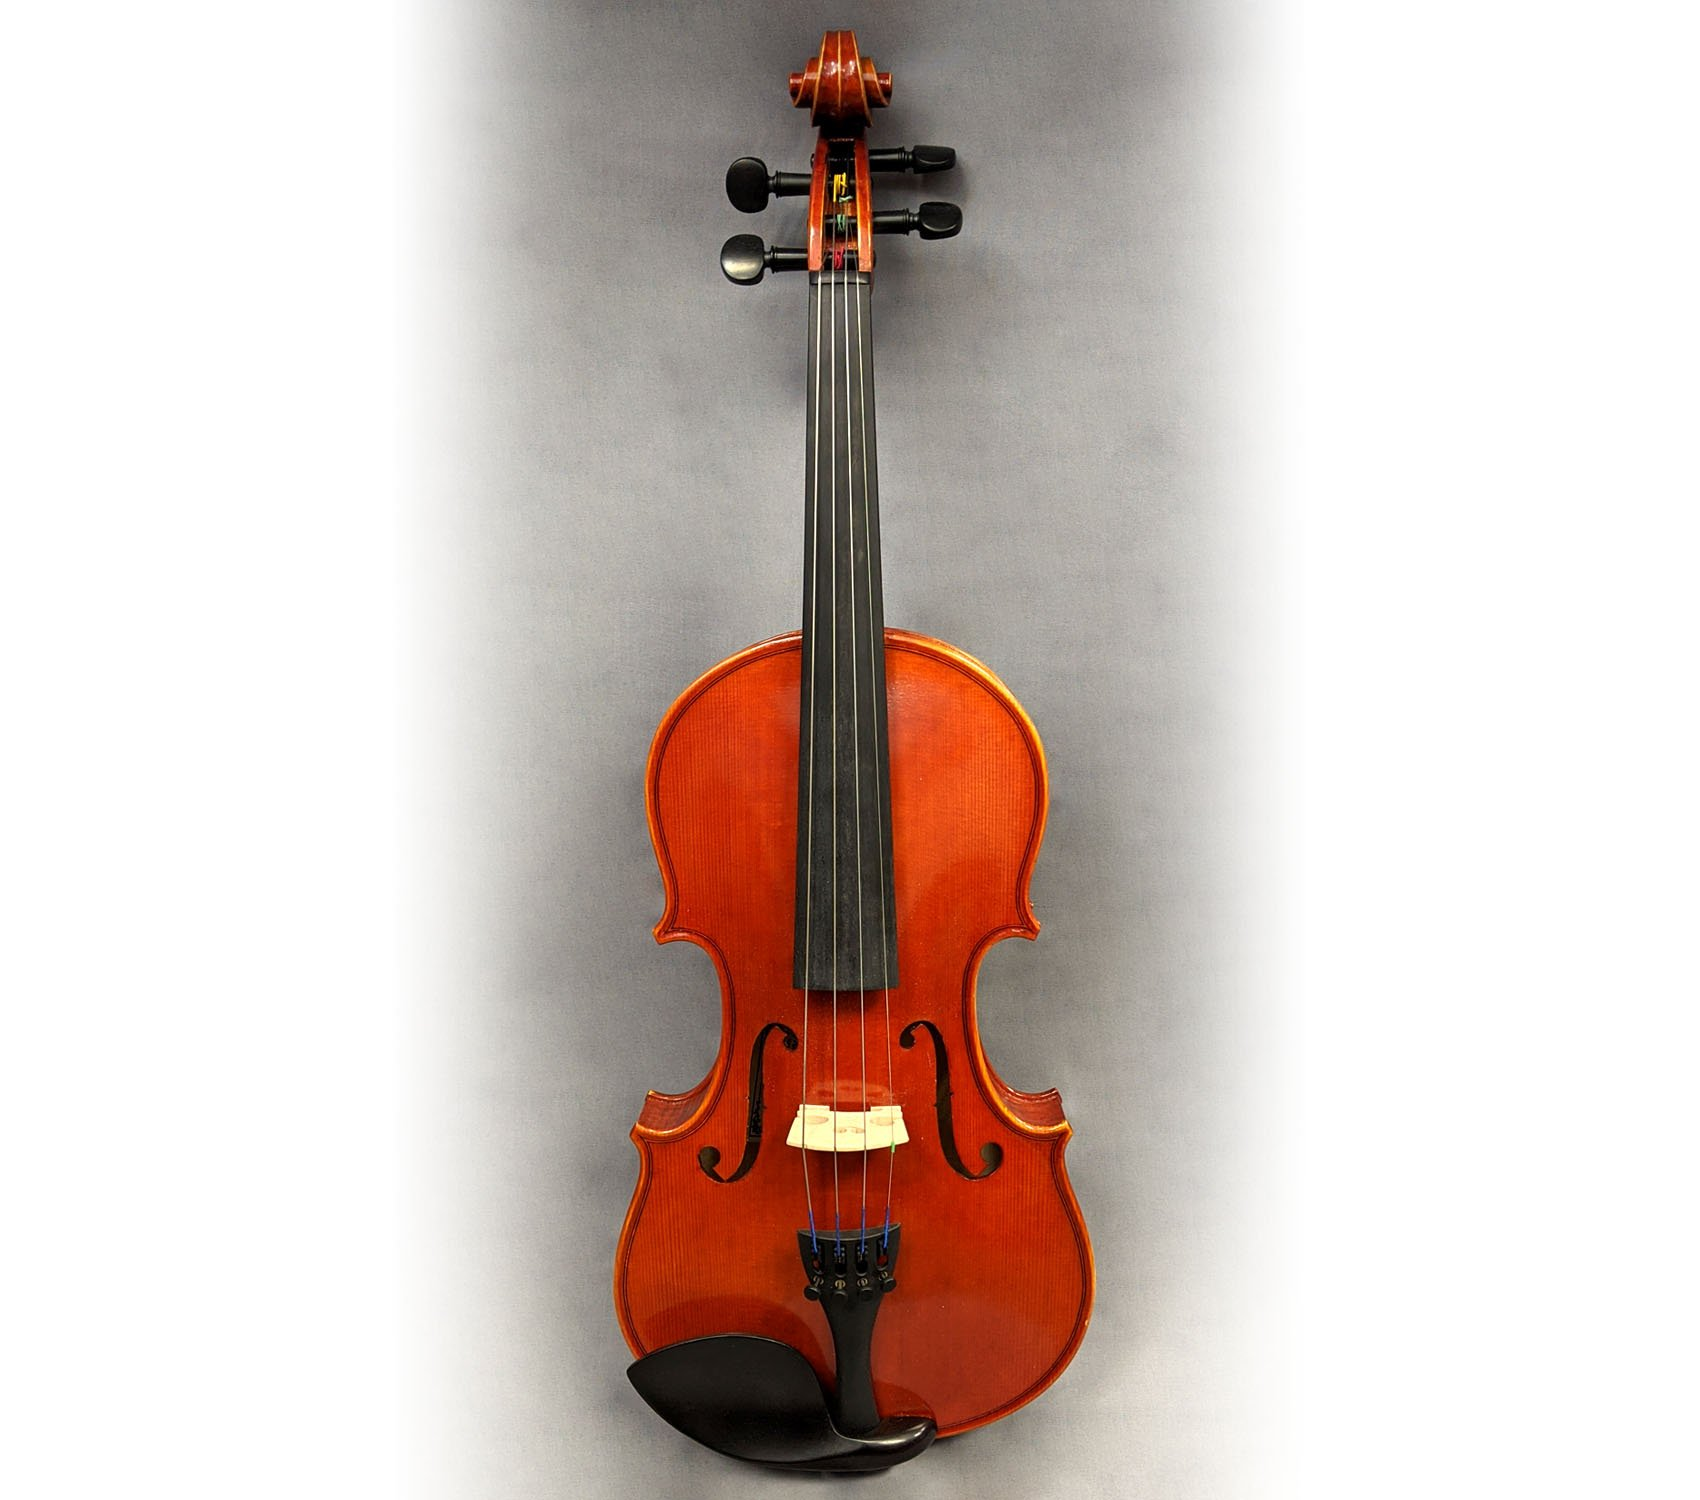 Pavia VN264P 4/4 Violin Outfit with Pegheds